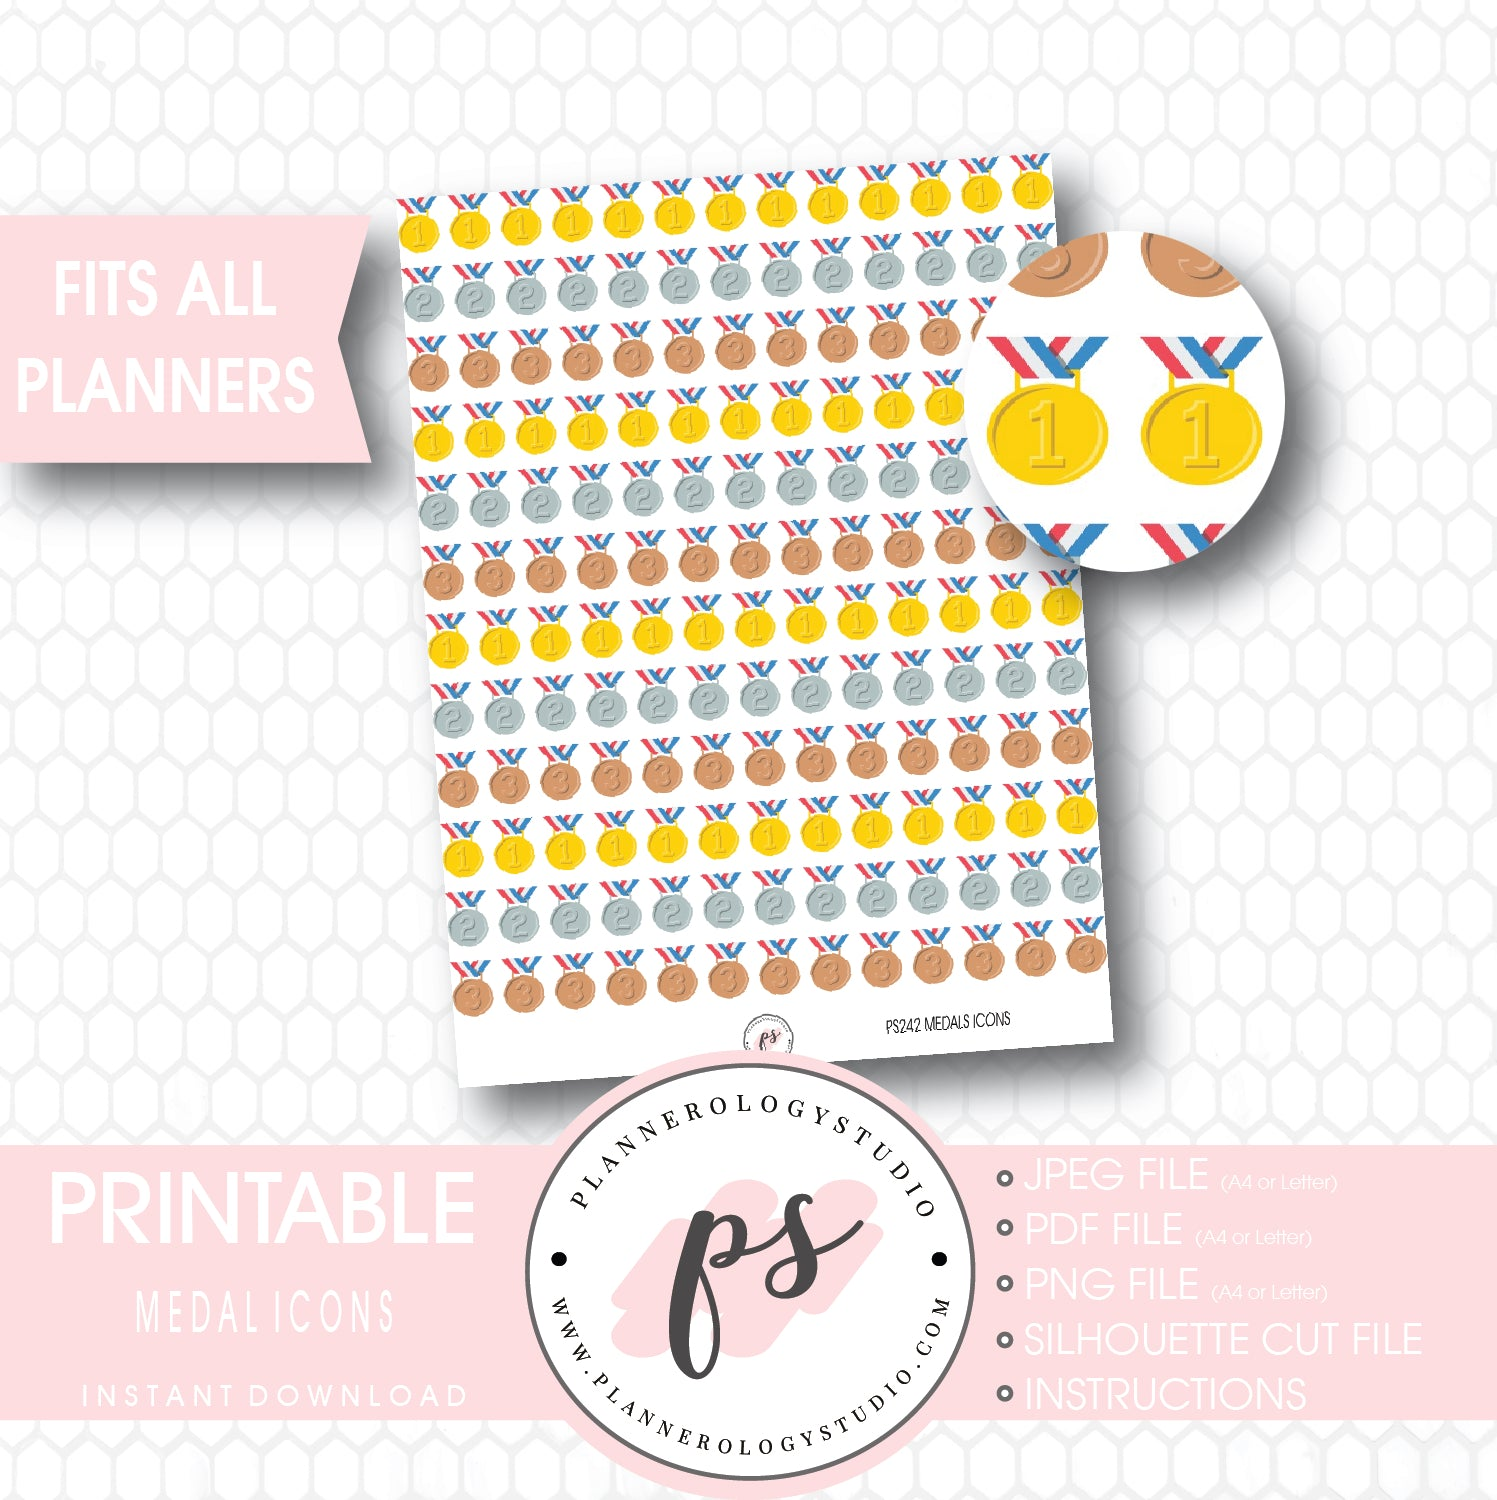 photo about Printable Medals called Medals (Gold, Silver Bronze) Icons Printable Planner Stickers